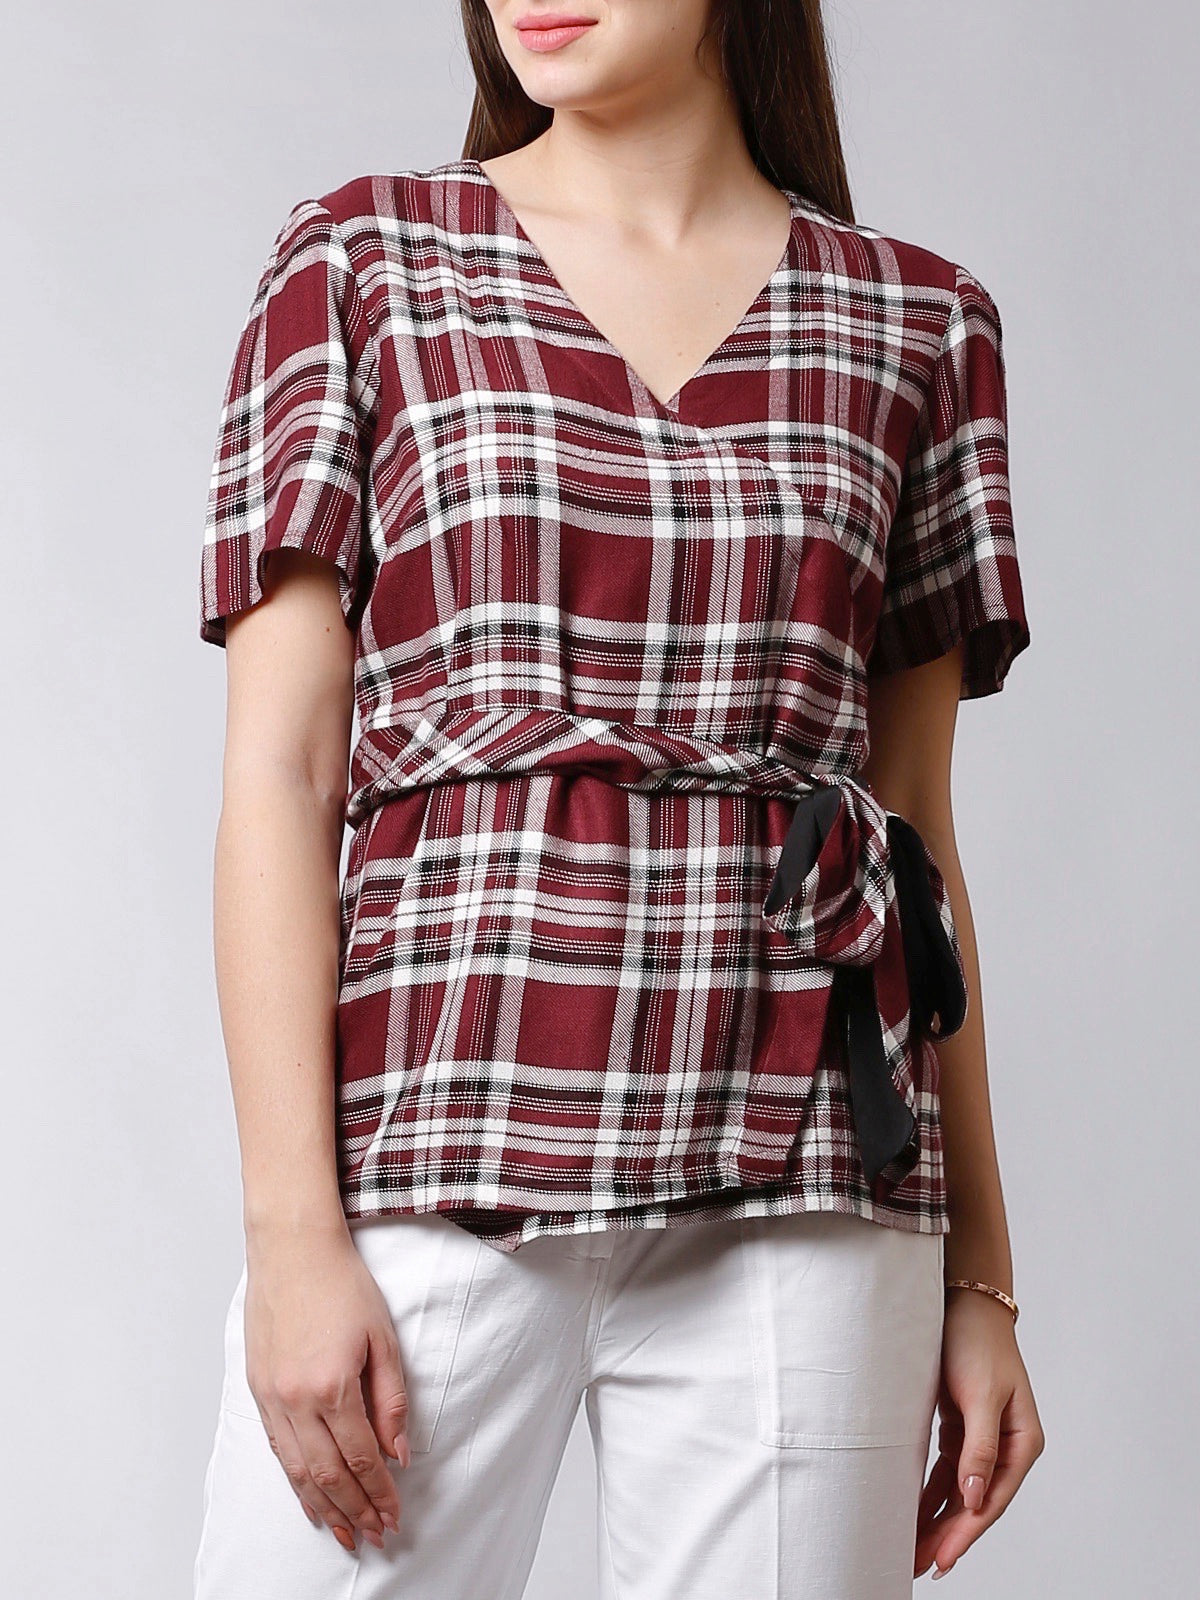 V neck Faux Wrap Top With Belt - Maroon Plaid